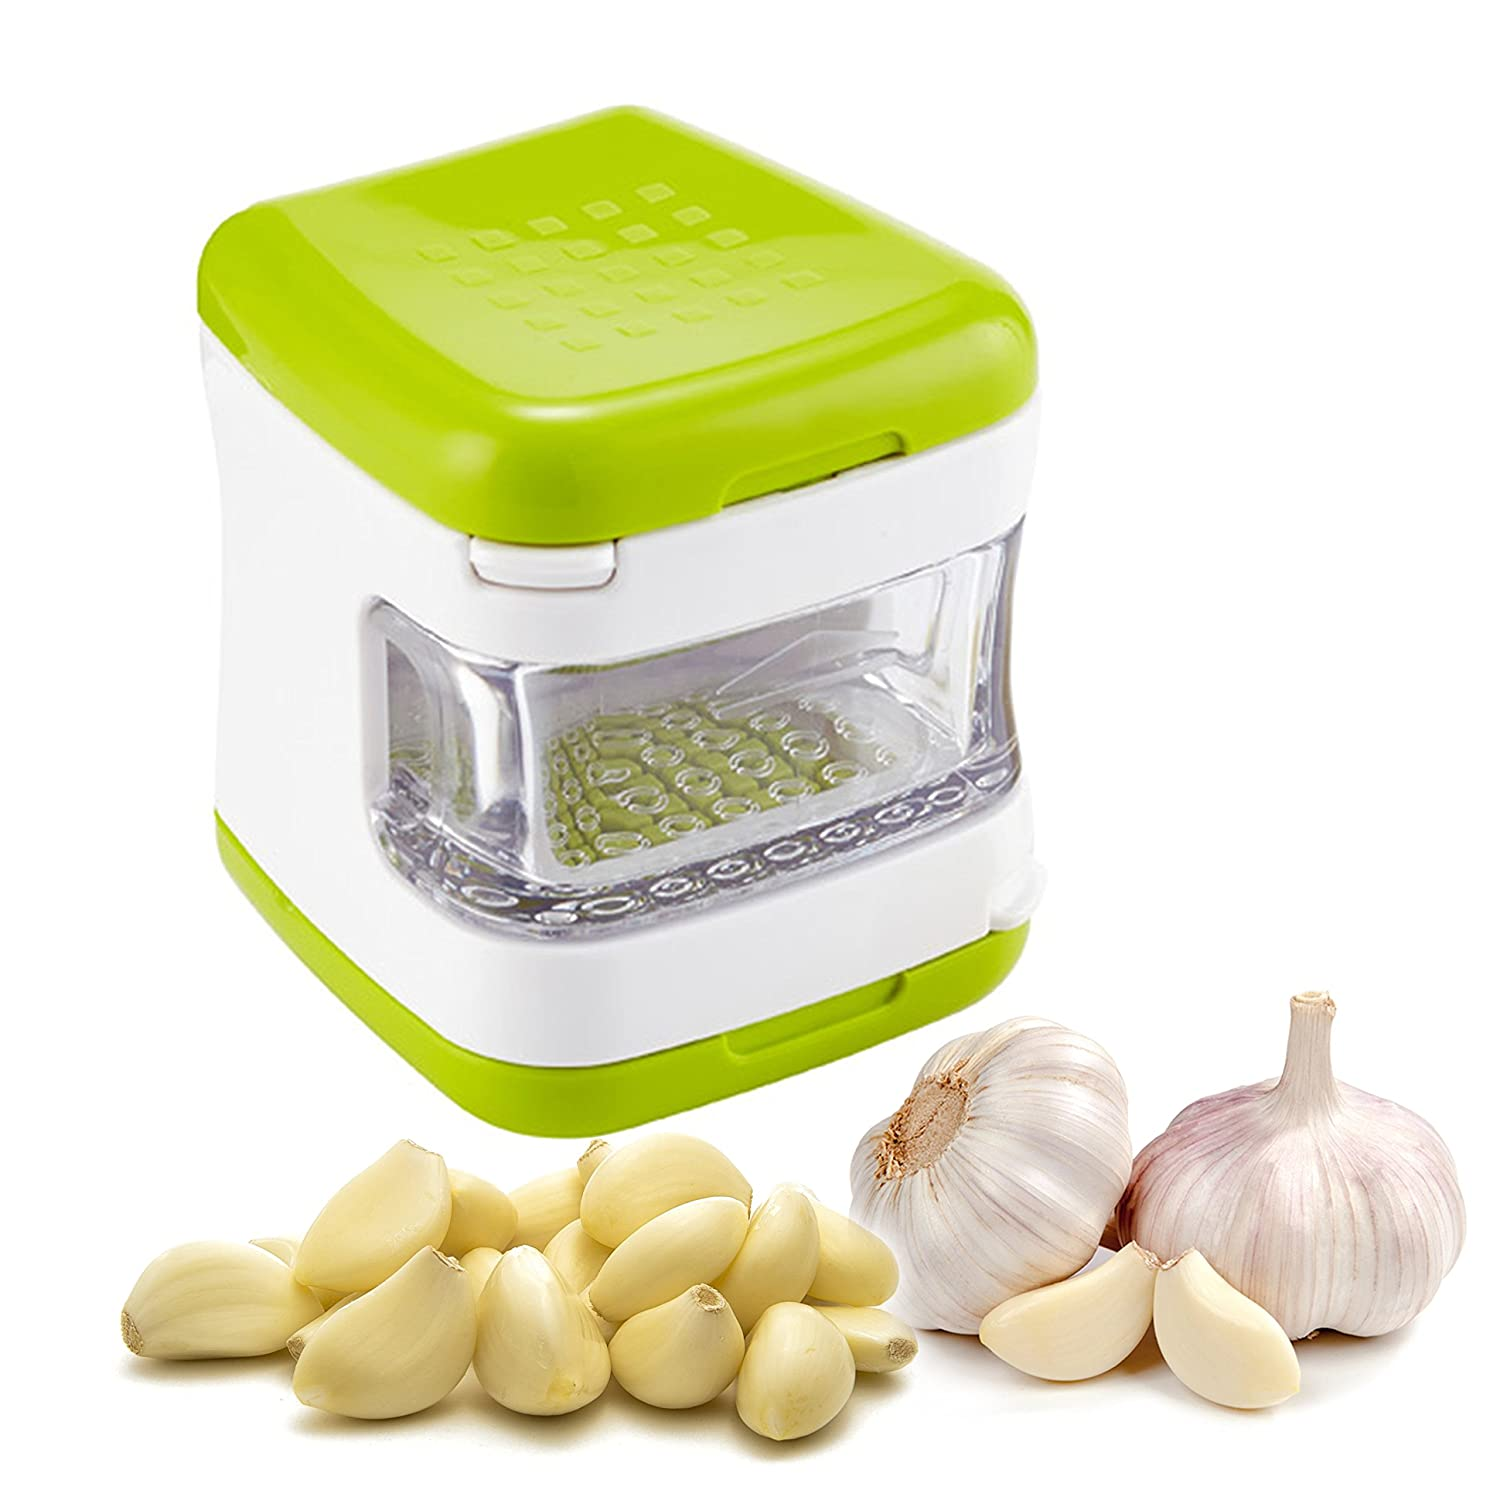 Premium Quality Clear Plastic Garlic Press With Stainless Steel Blades & Built-In Tray By Yarmoshi - Durable & Sturdy Construction - Mincer & Slicer , Ergonomic Design , Practical Kitchen Utensil